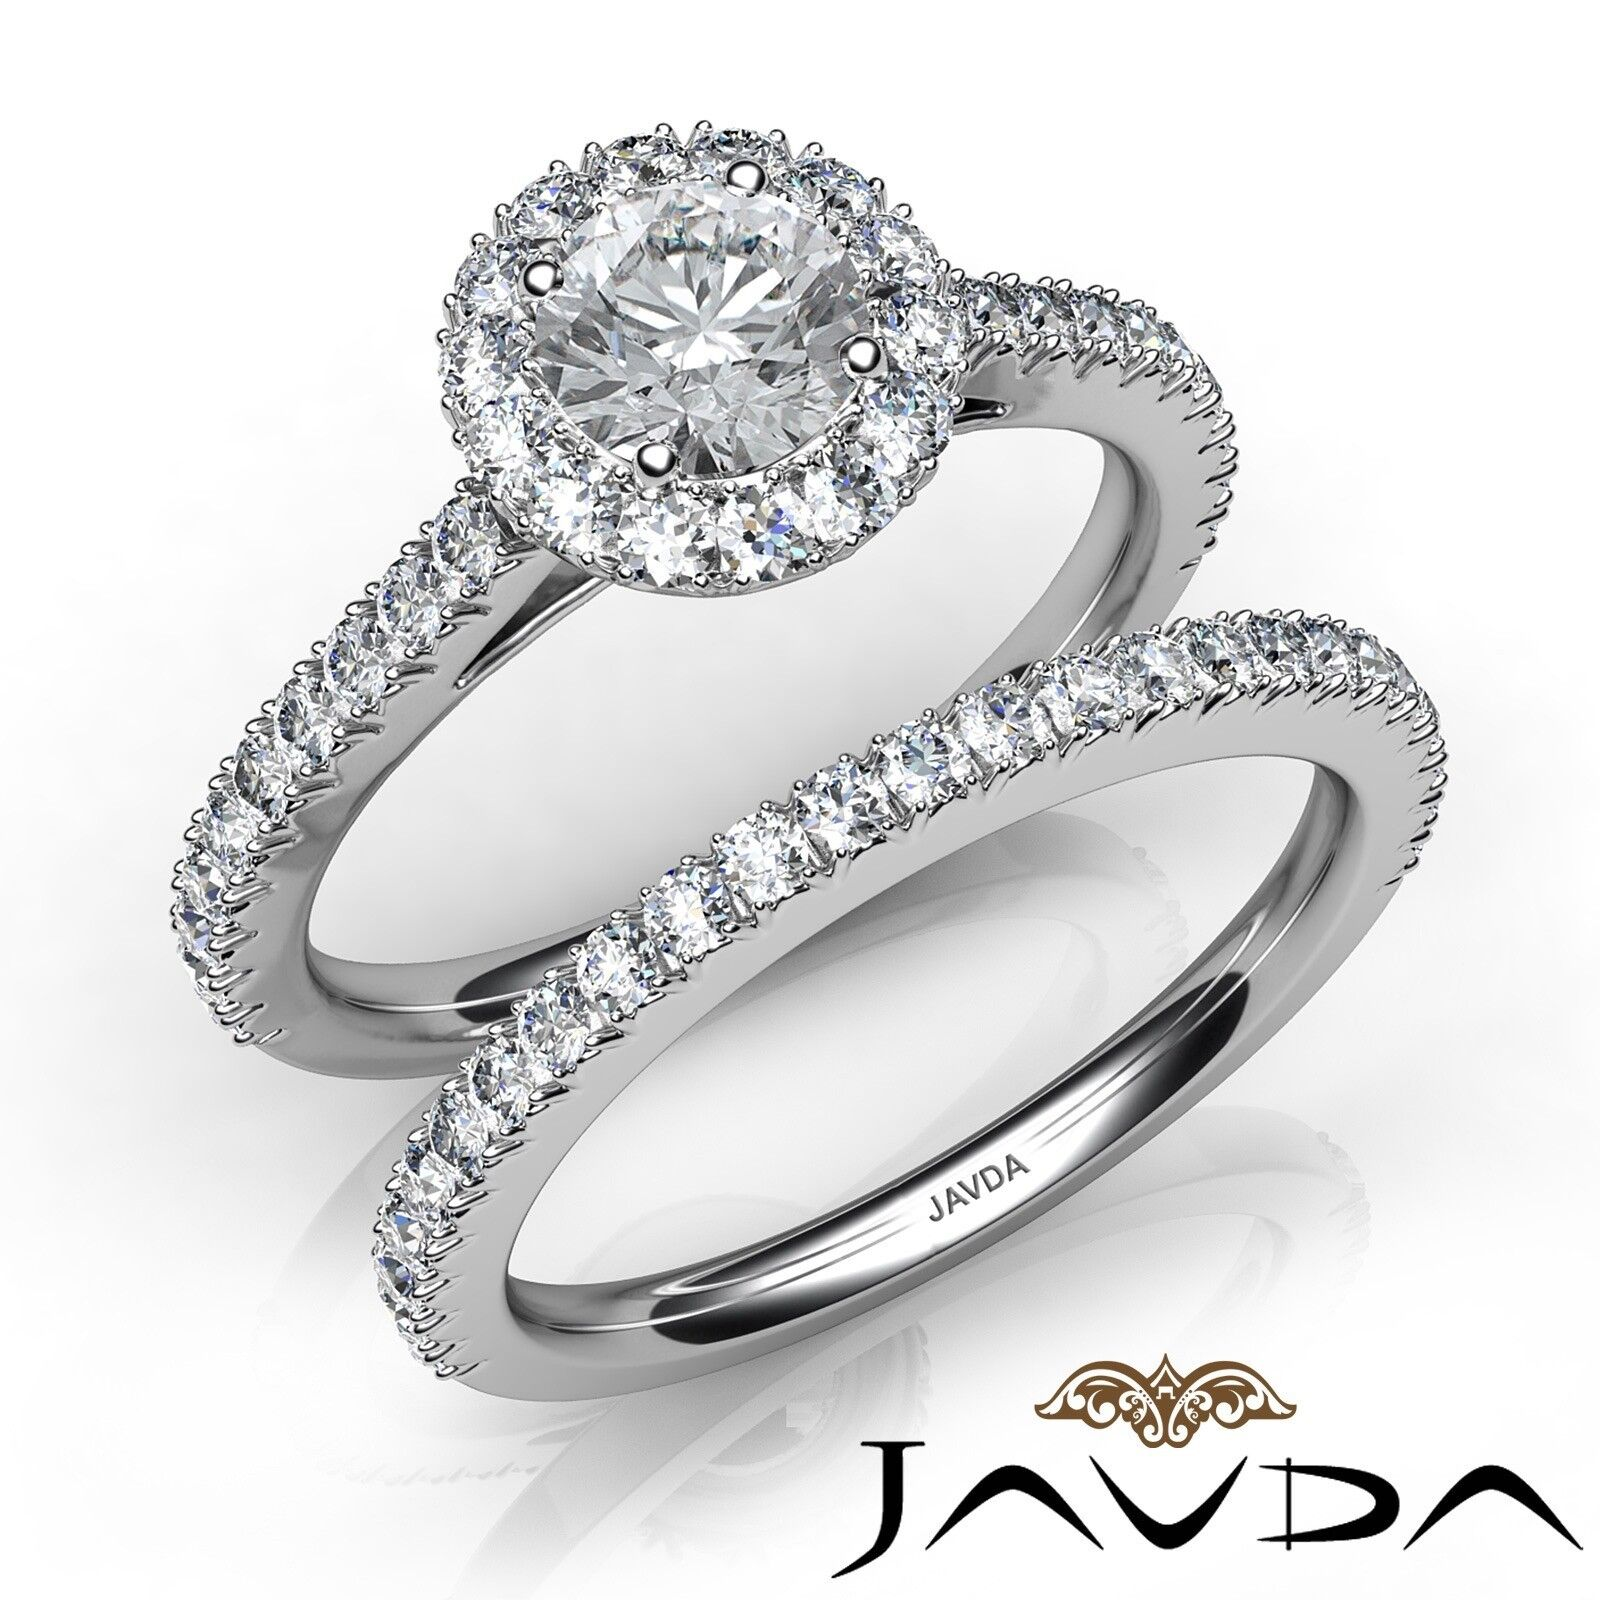 1.95ctw French Pave Shank Bridal Round Diamond Engagement Ring GIA F-VS1 W Gold